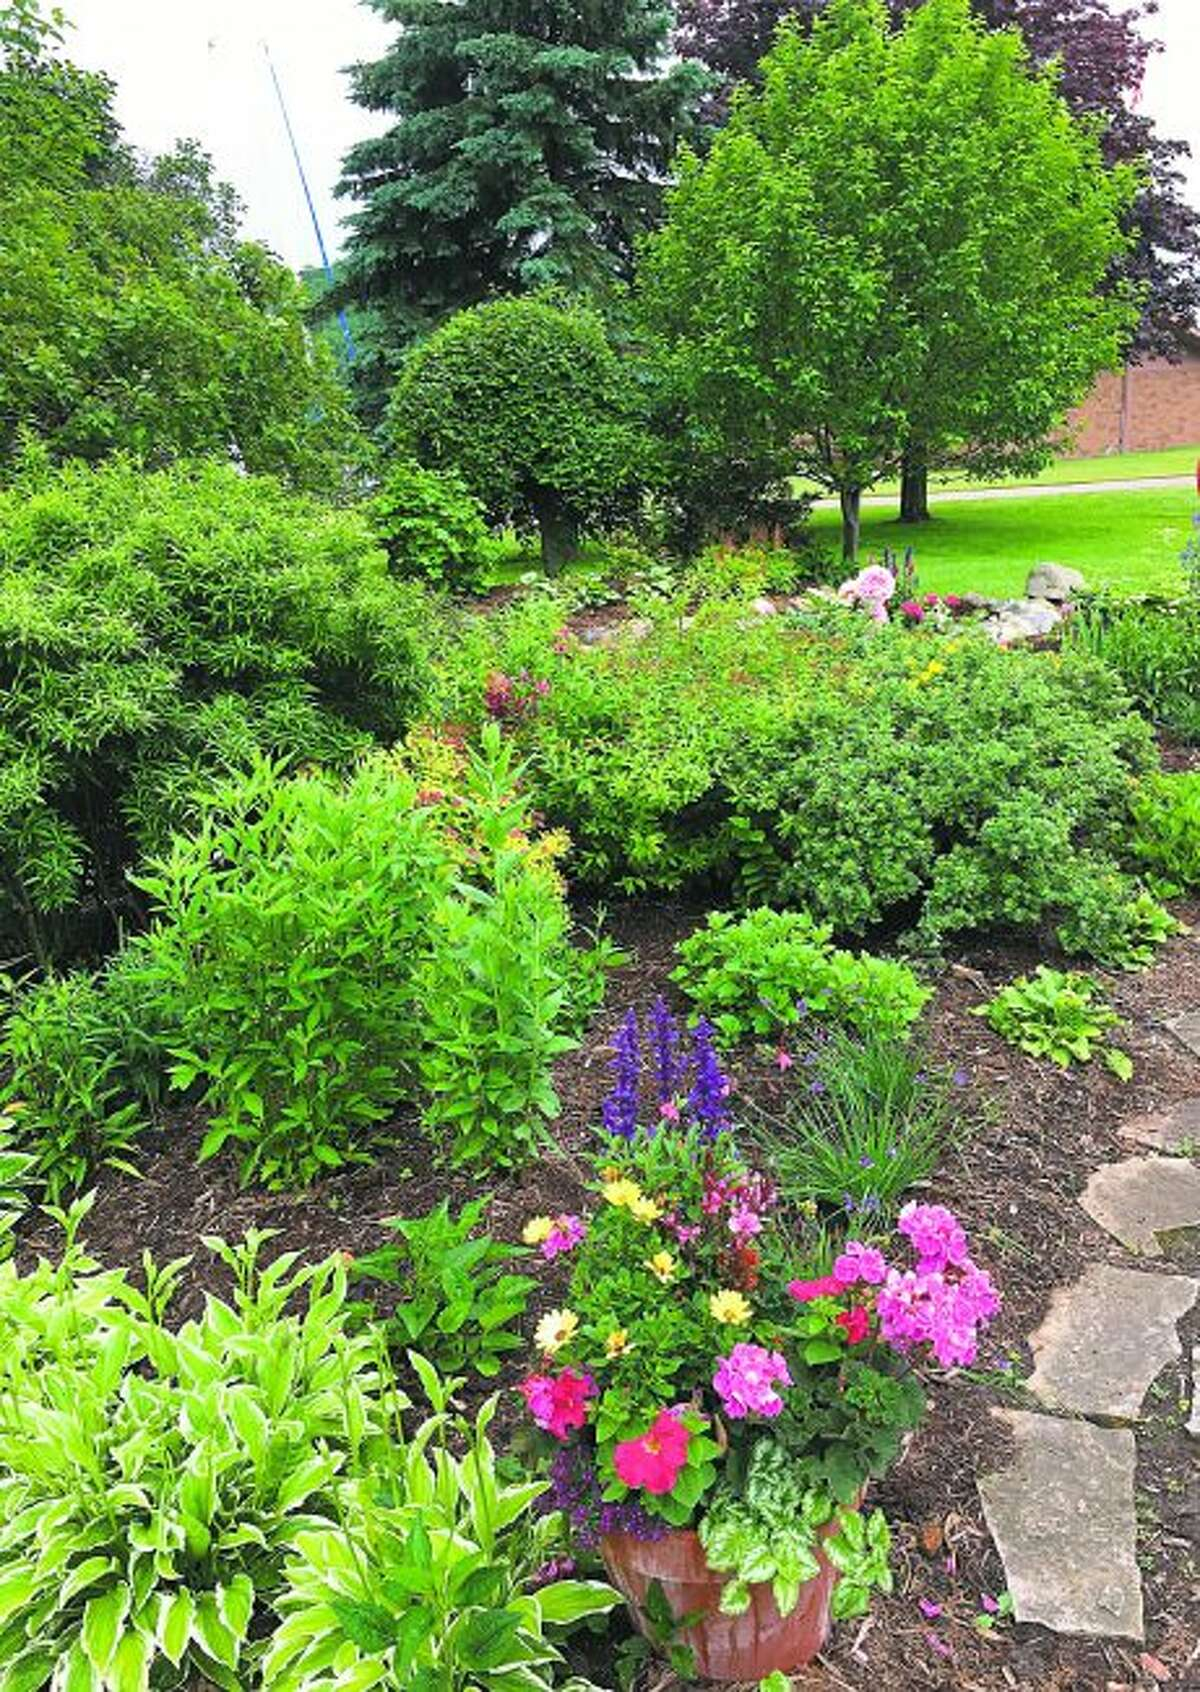 The Periwinkle Garden Club of Frankfort cares for seven gardens, including the one at Mineral Springs Park. (Courtesy photo)